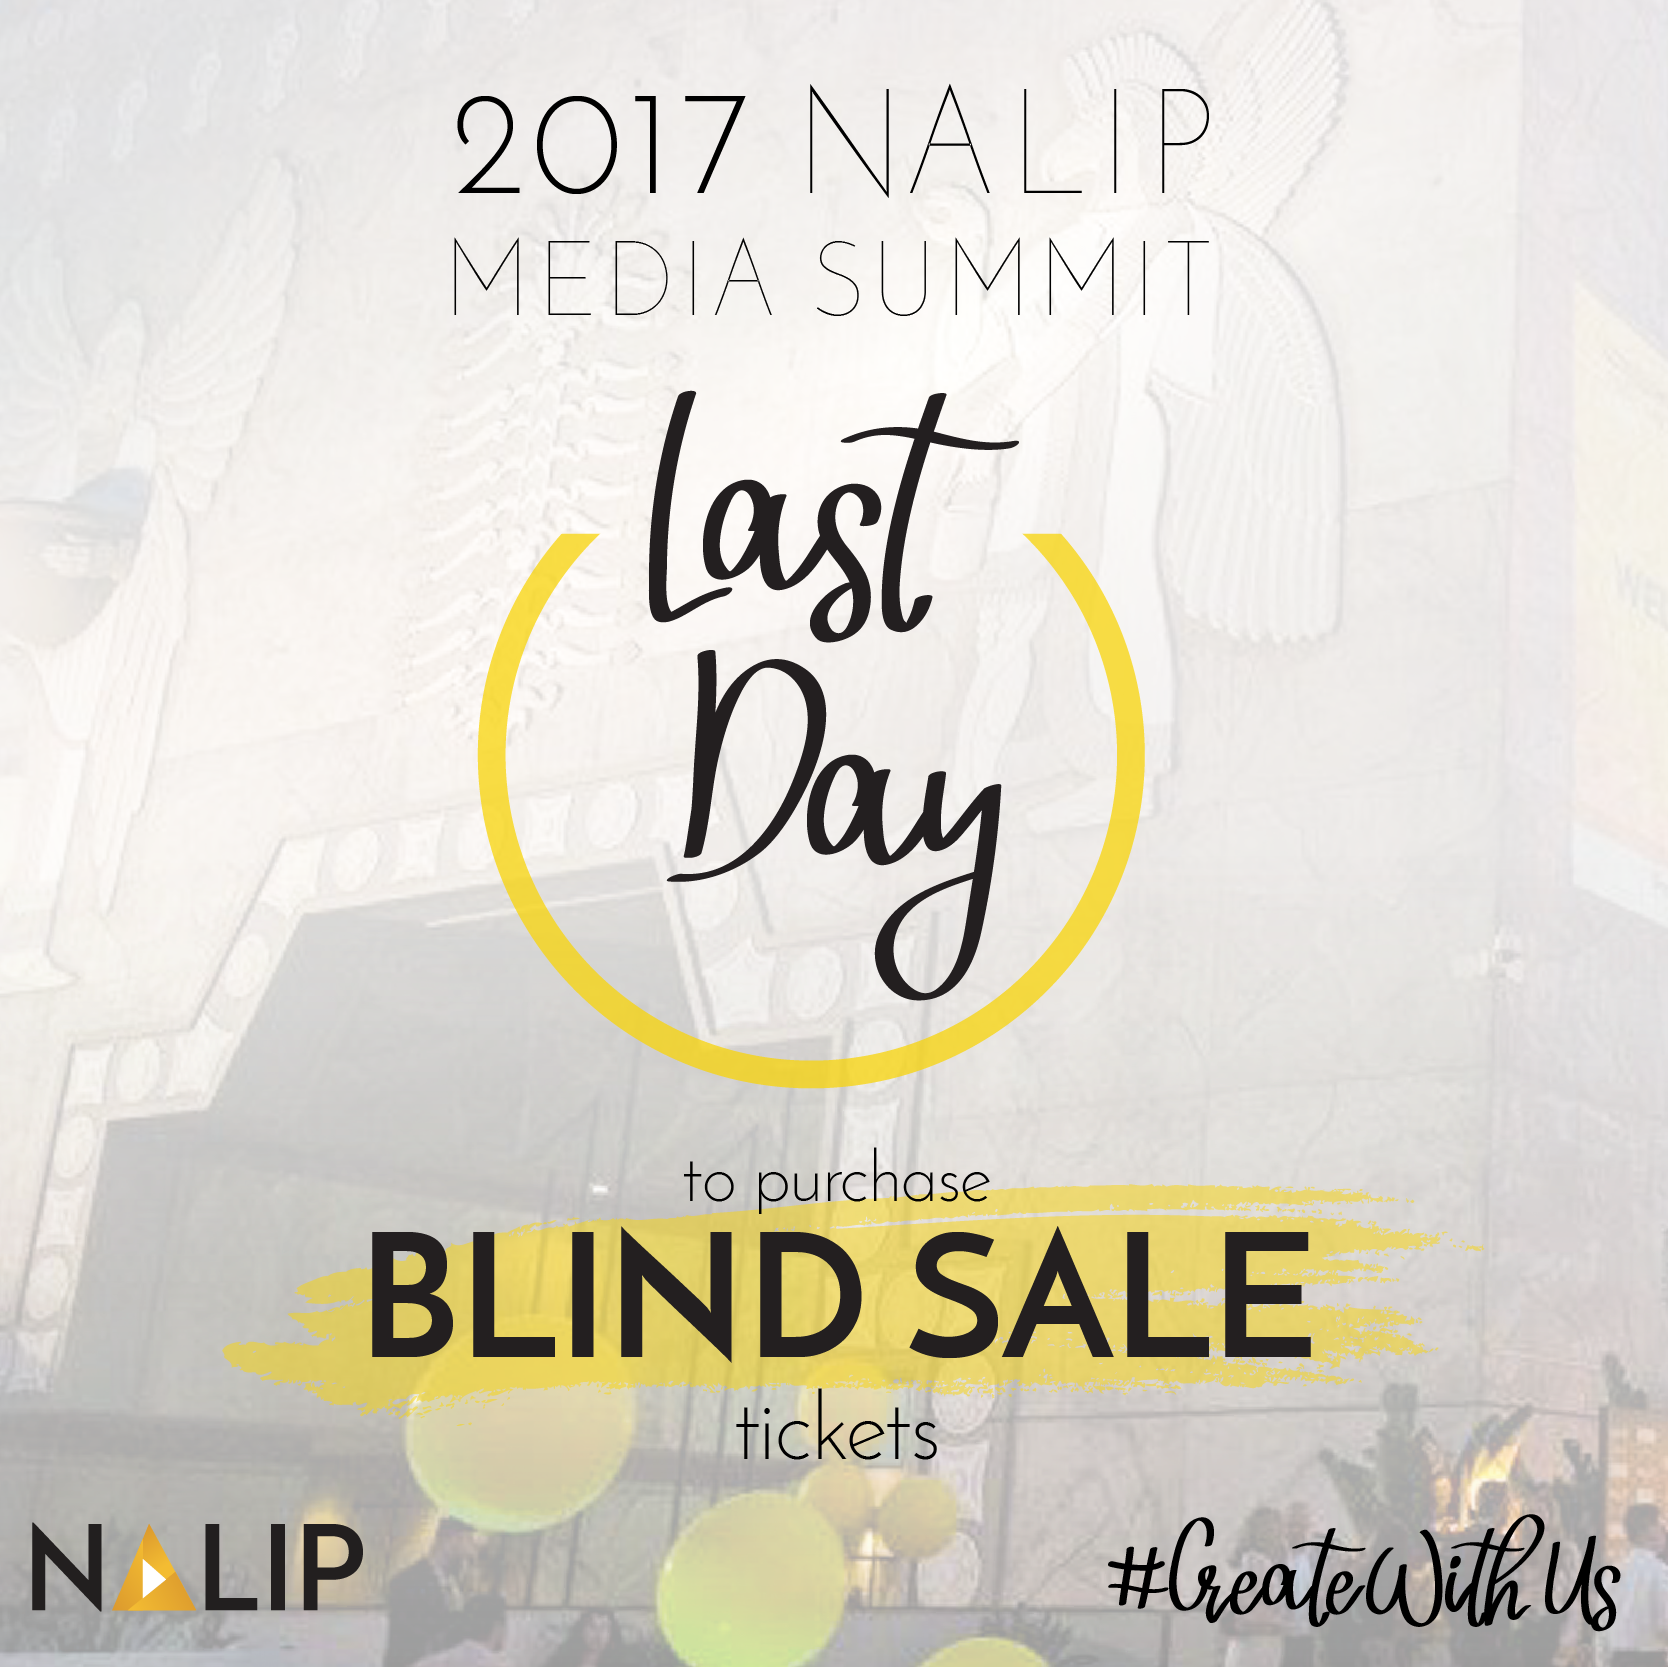 Media_Summit_Blind_Sale_Last_Day_.png